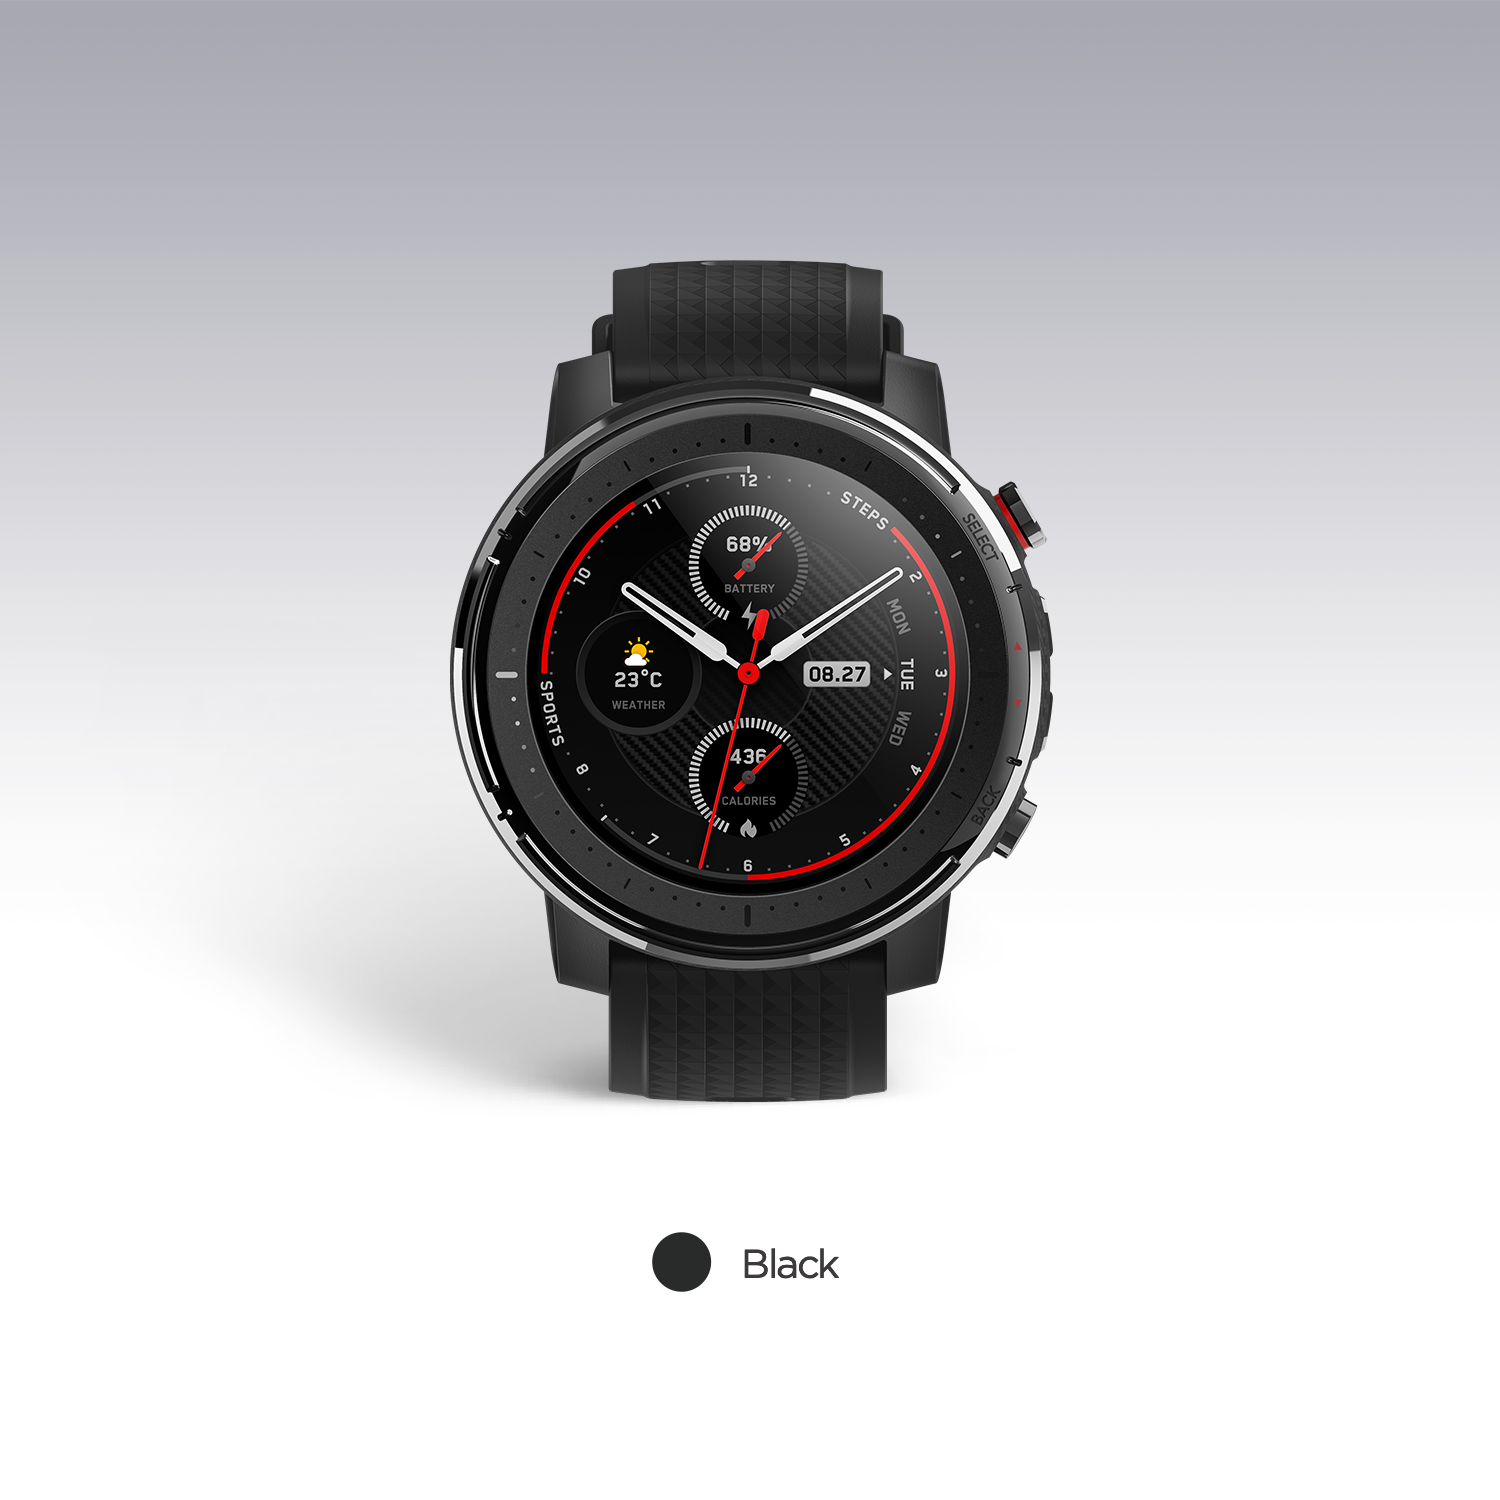 Top SaleAmazfit GPS Smartwatch 14-Days-Battery Music Bluetooth Android 5ATM Heart-Rate for 3